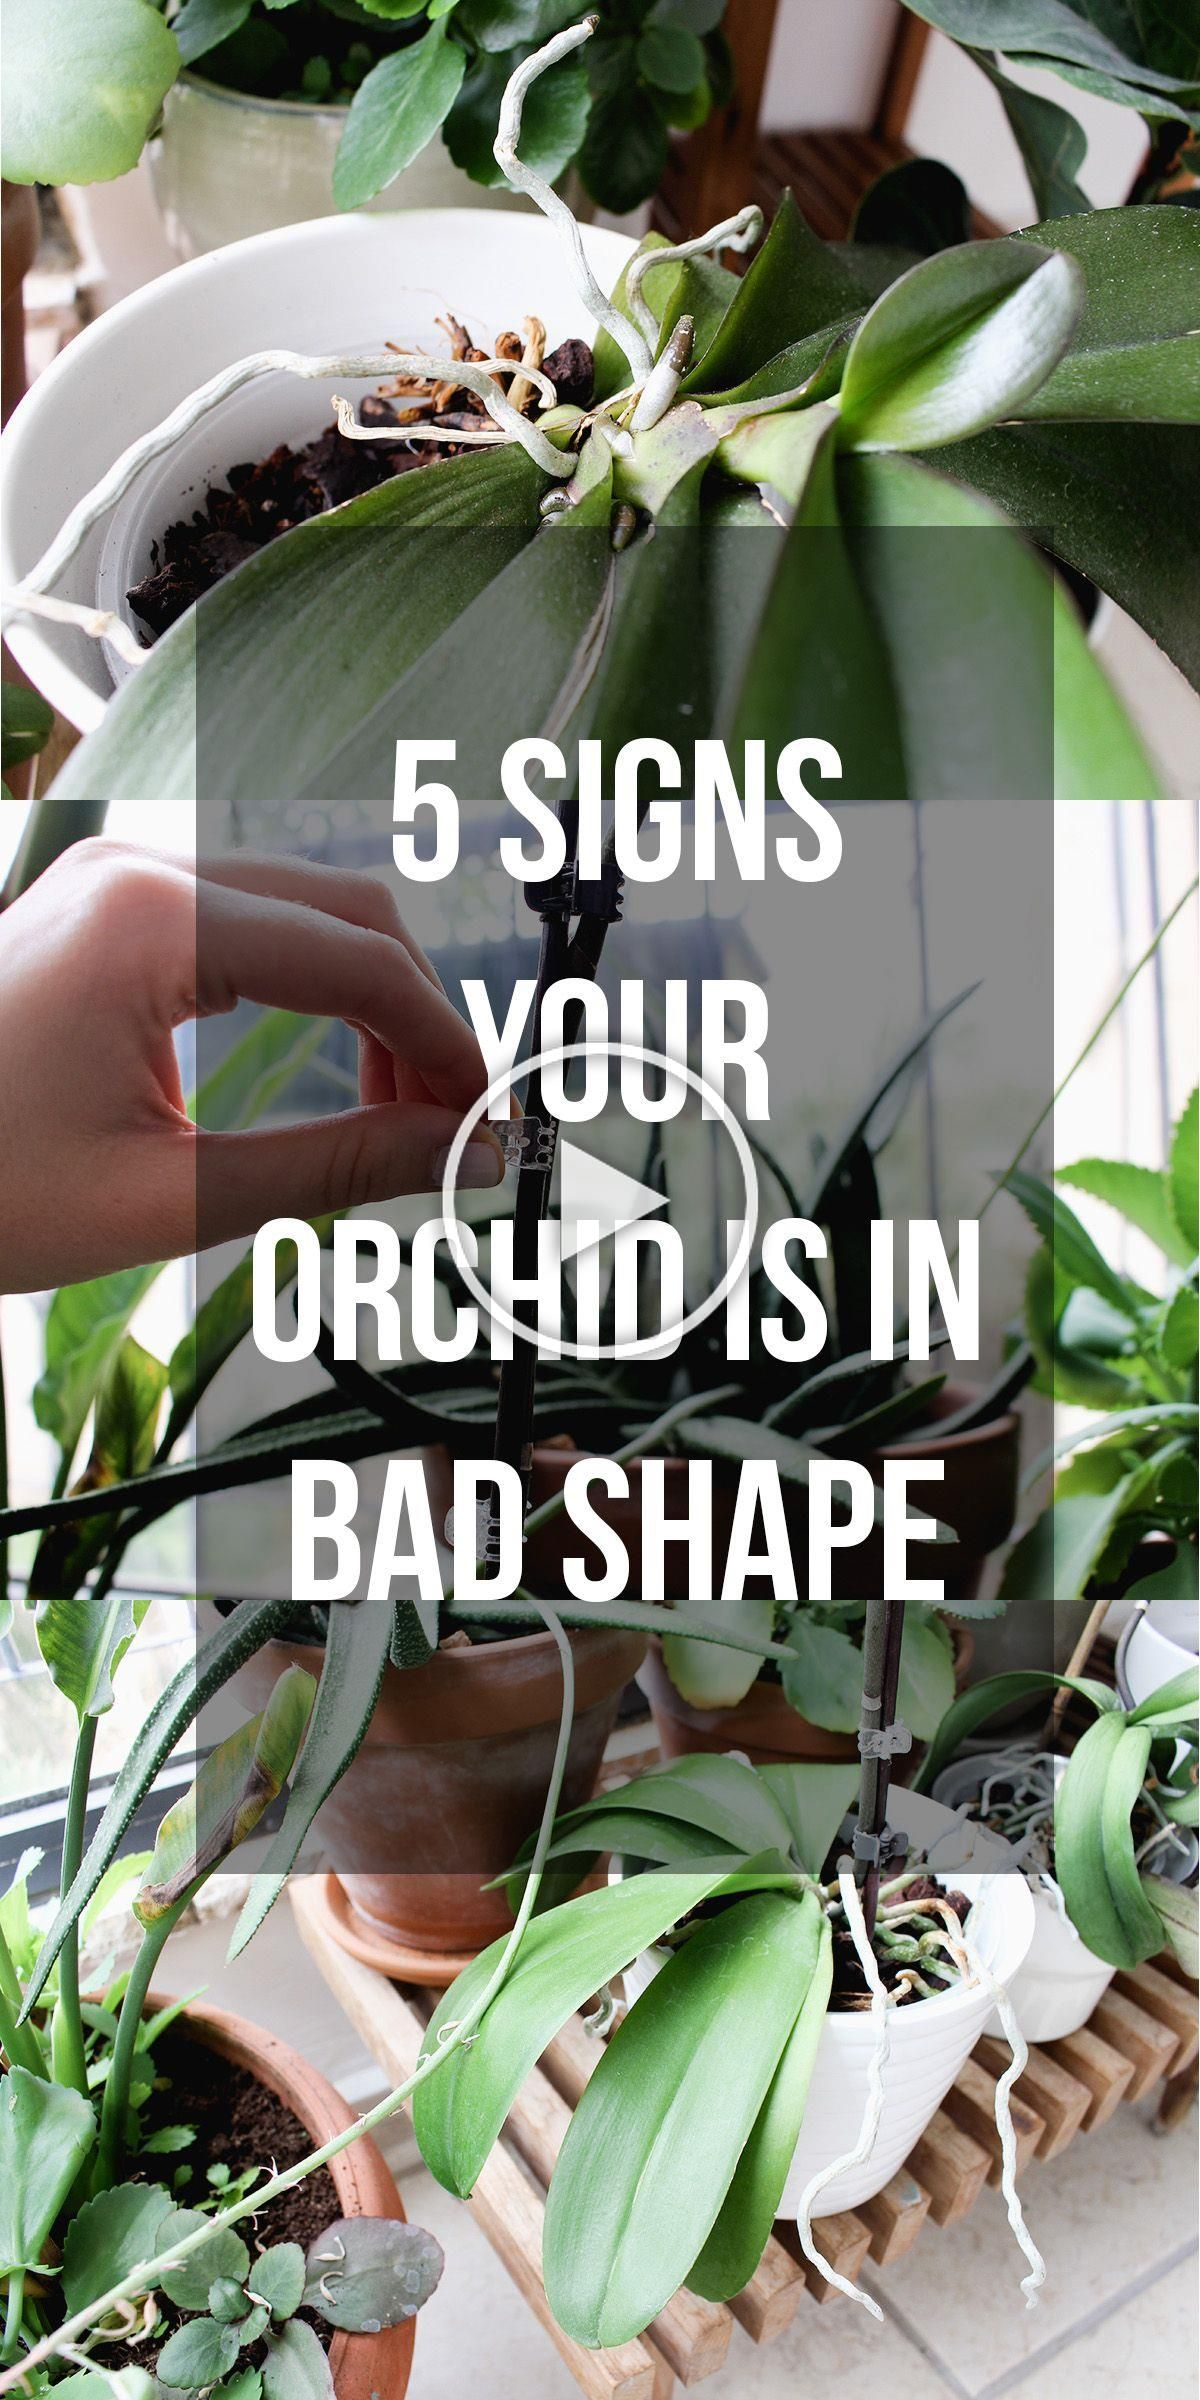 5 Signs Your Orchid Is In Bad Shape In 2020 Orchideenpflege Orchideen Pflege Orchideen